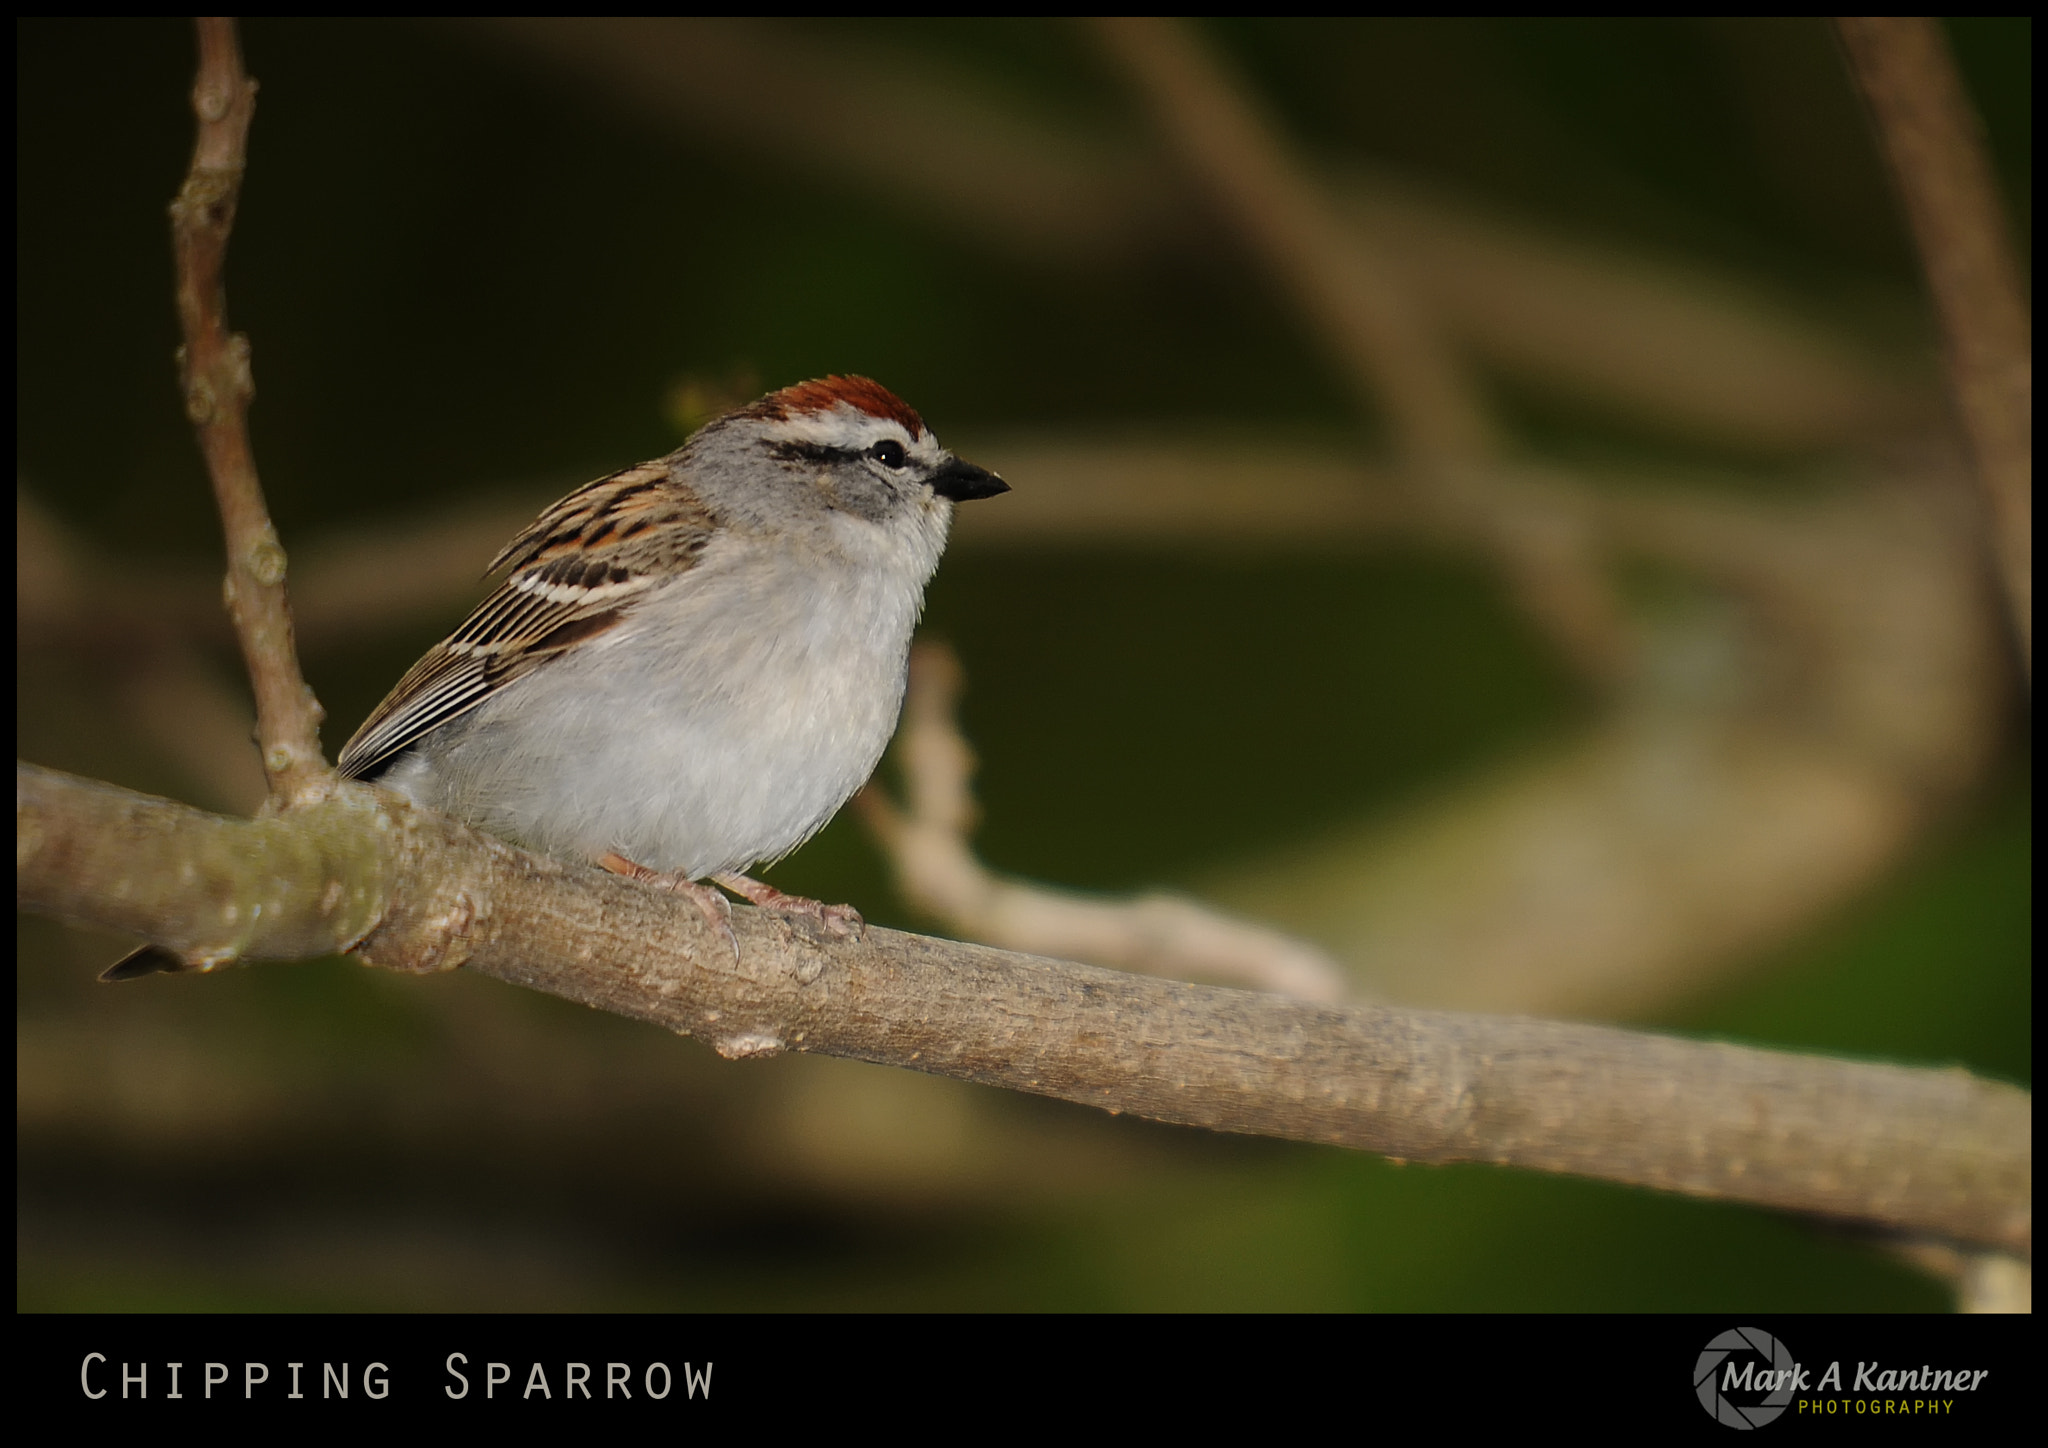 Photograph Chipping Sparrow by Mark Kantner on 500px